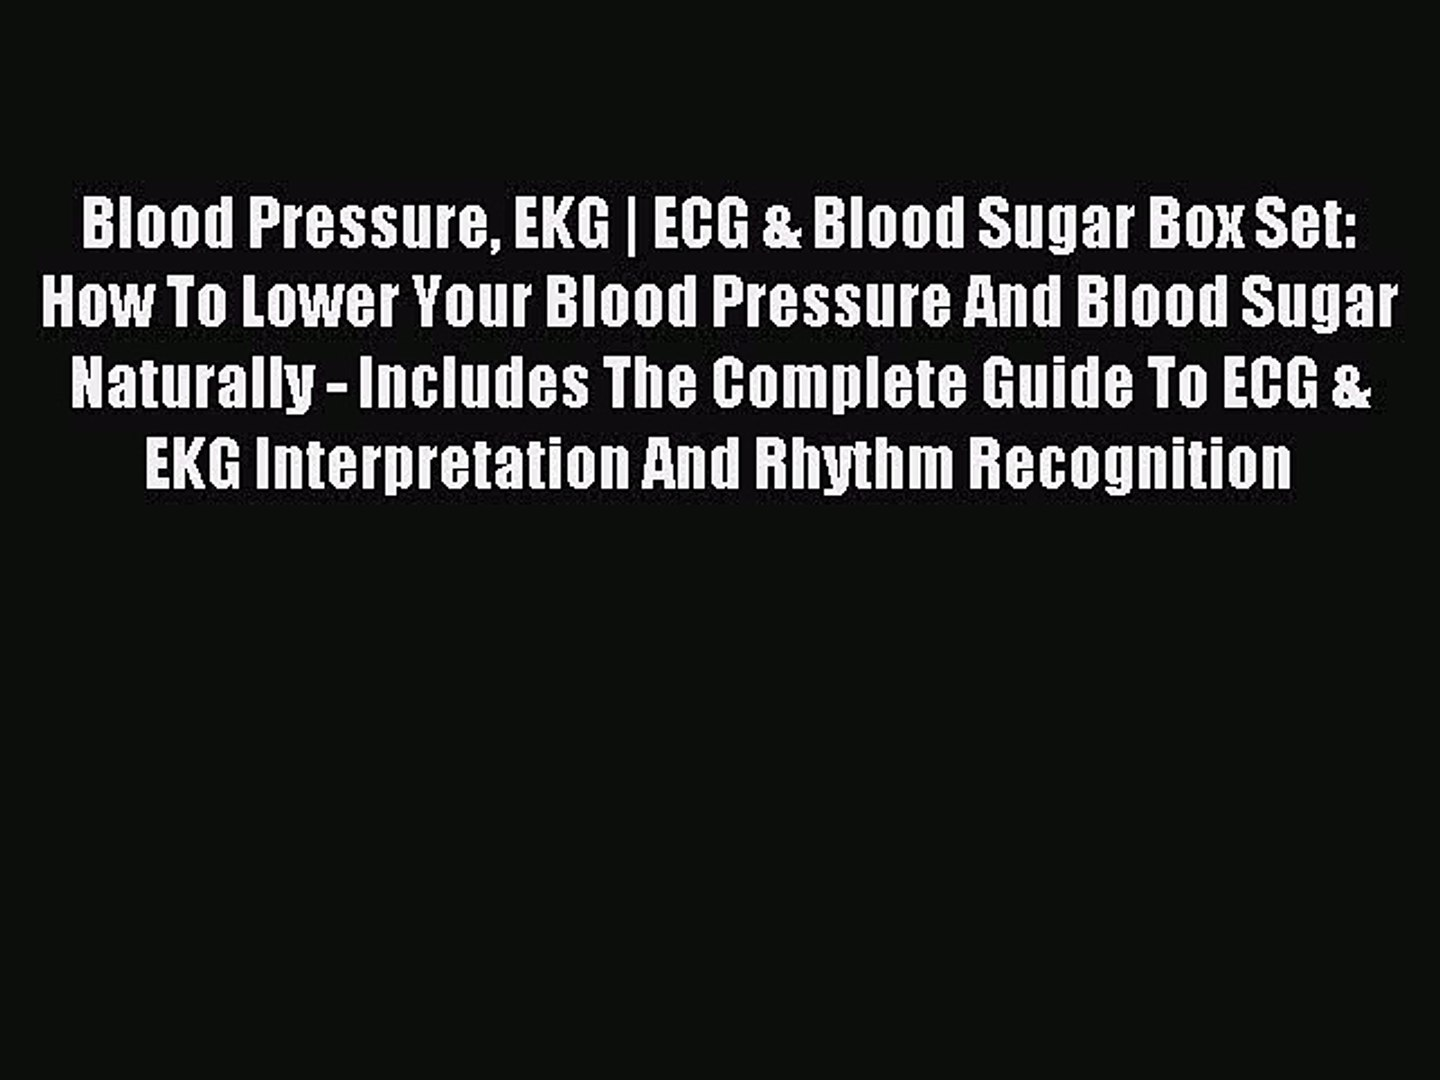 Download Blood Pressure EKG | ECG & Blood Sugar Box Set: How To Lower Your Blood Pressure And